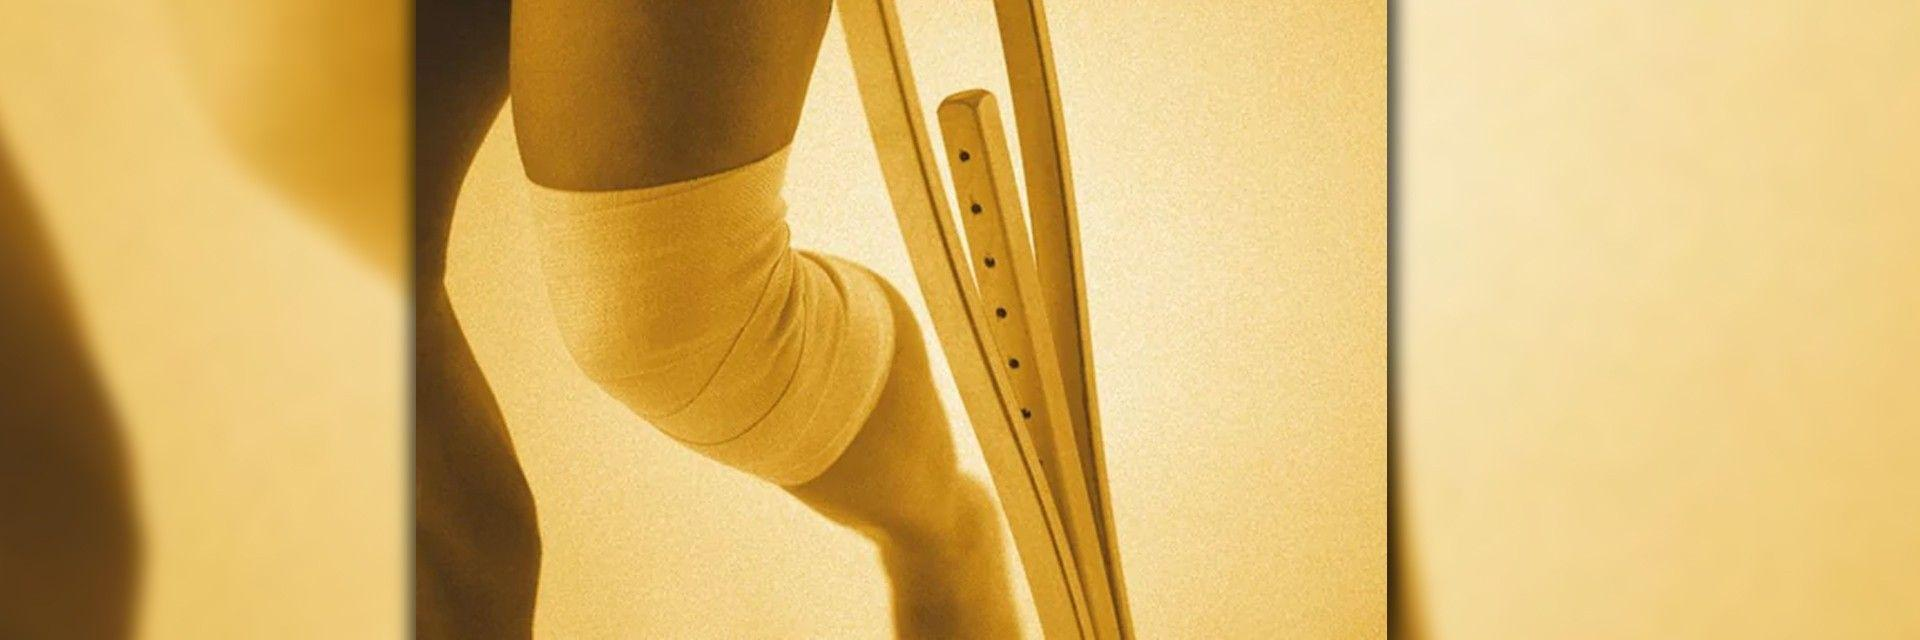 Home Beats Rehab for Knee, Hip Replacement Recovery